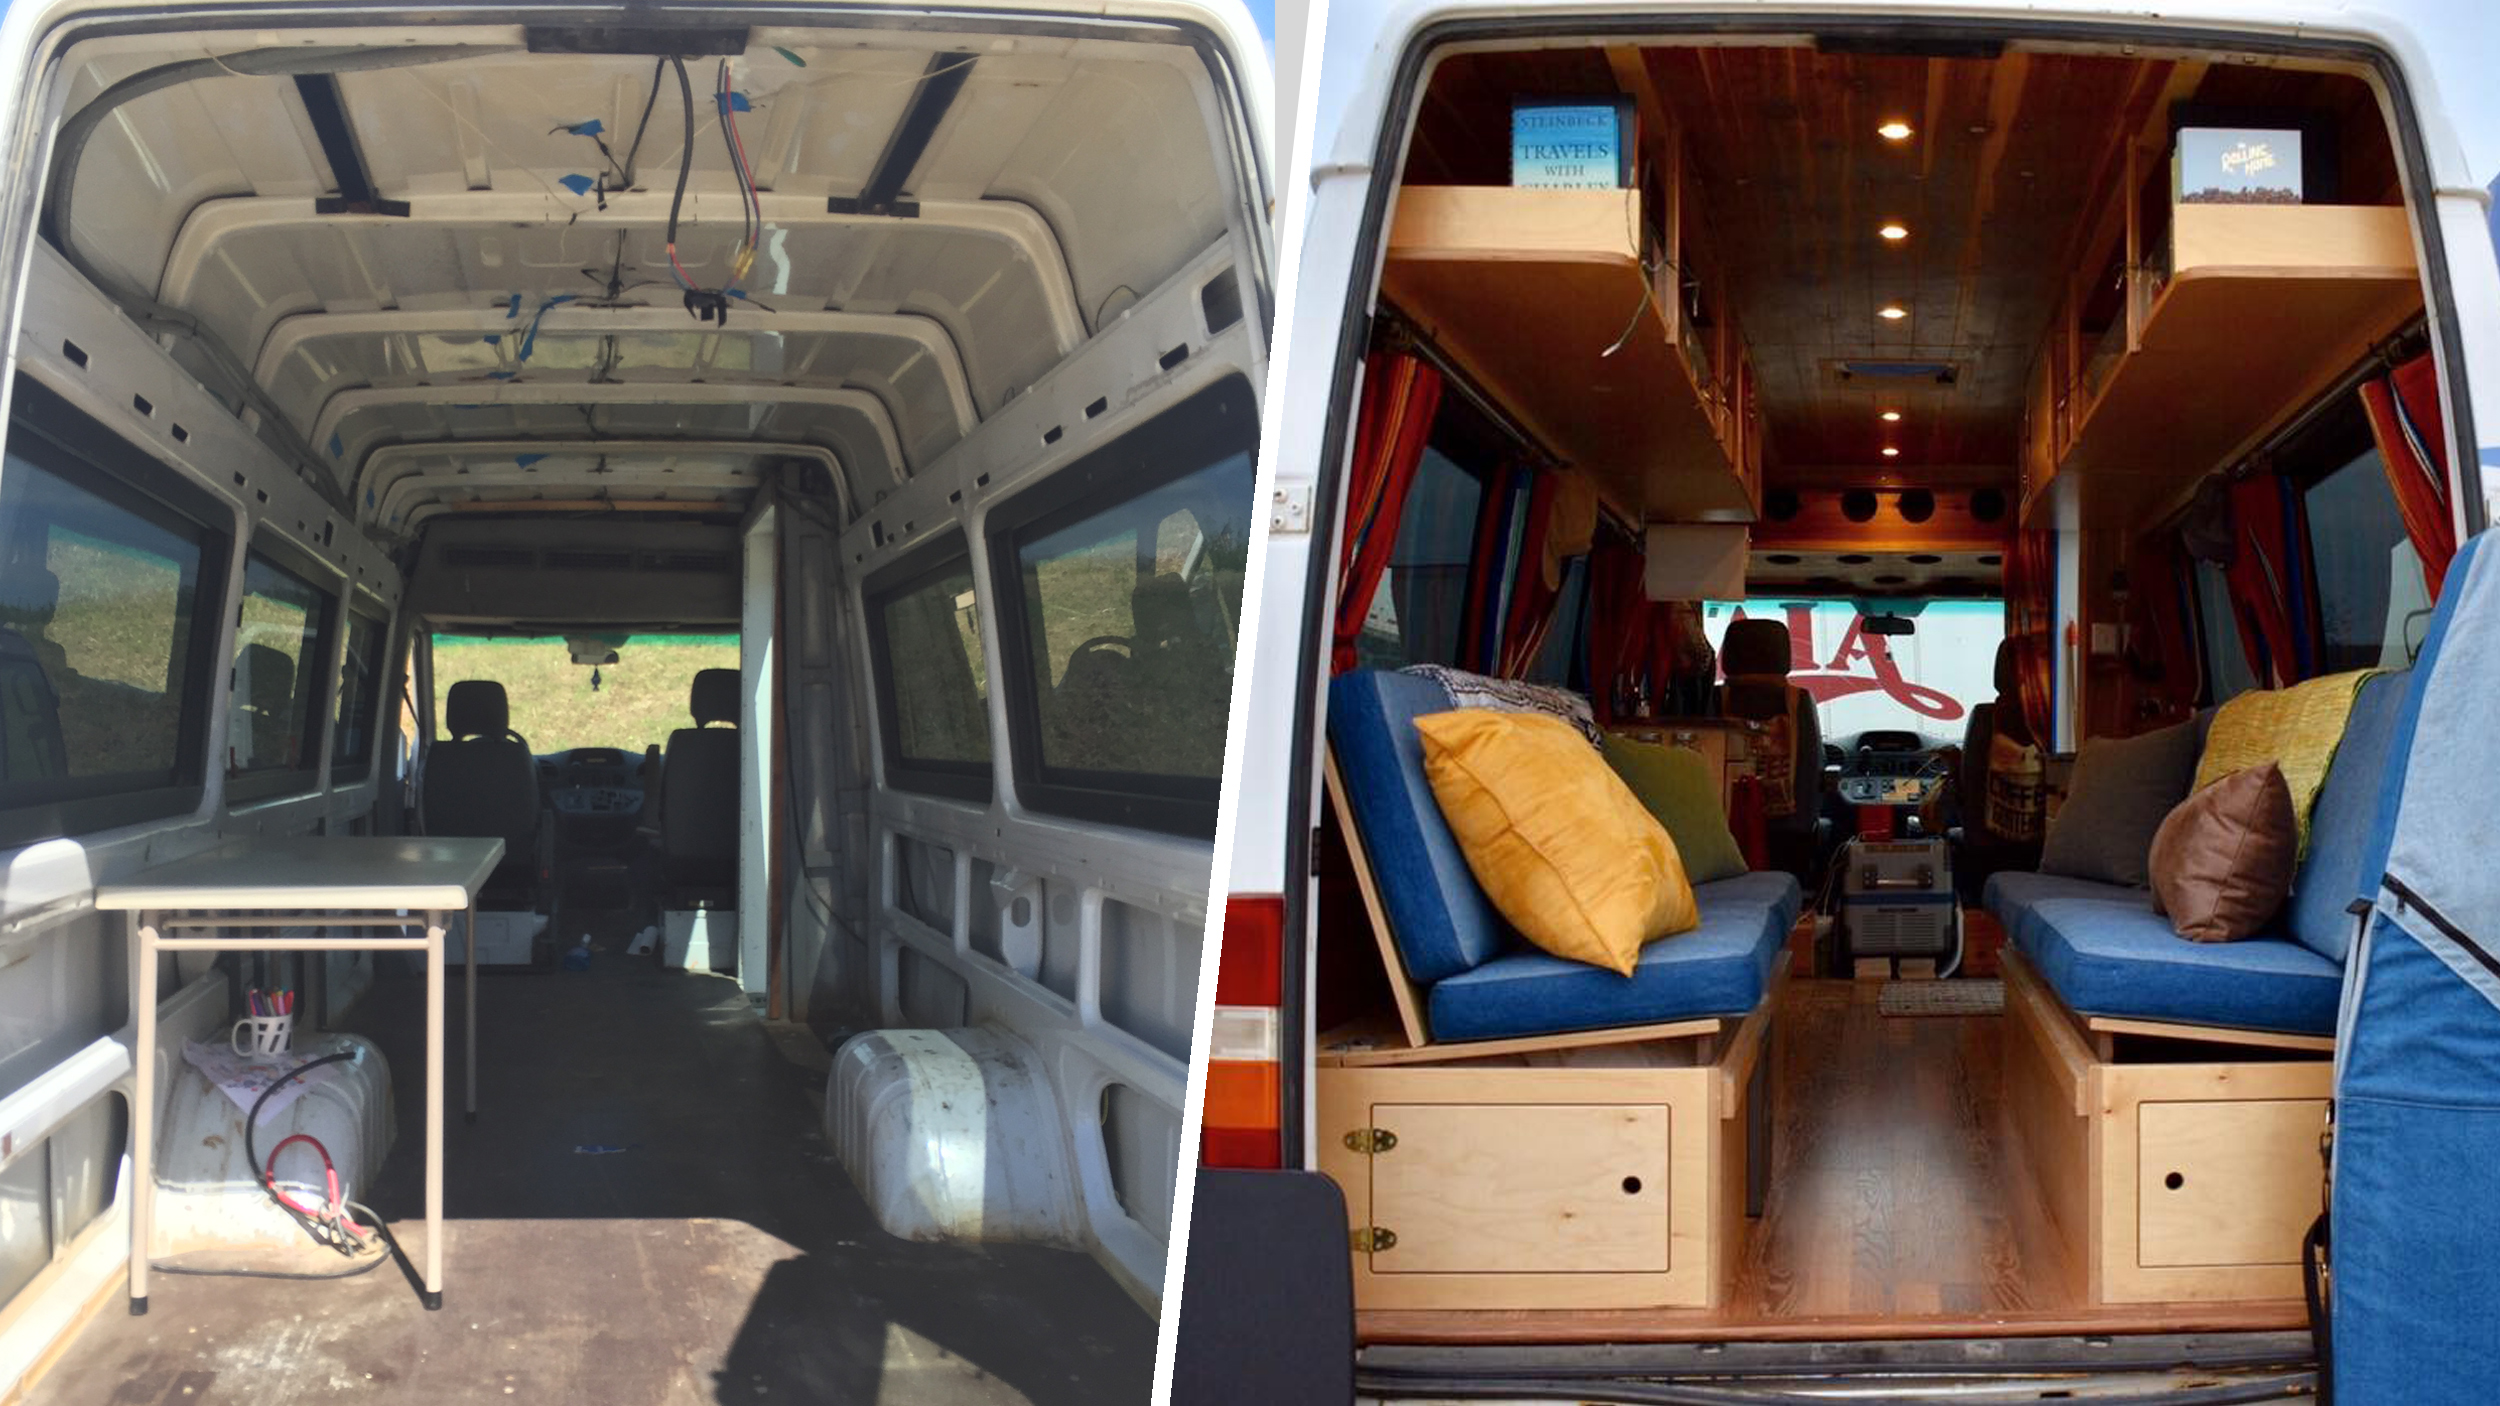 Couple Converts Airport Shuttle Bus Into Home On Wheels